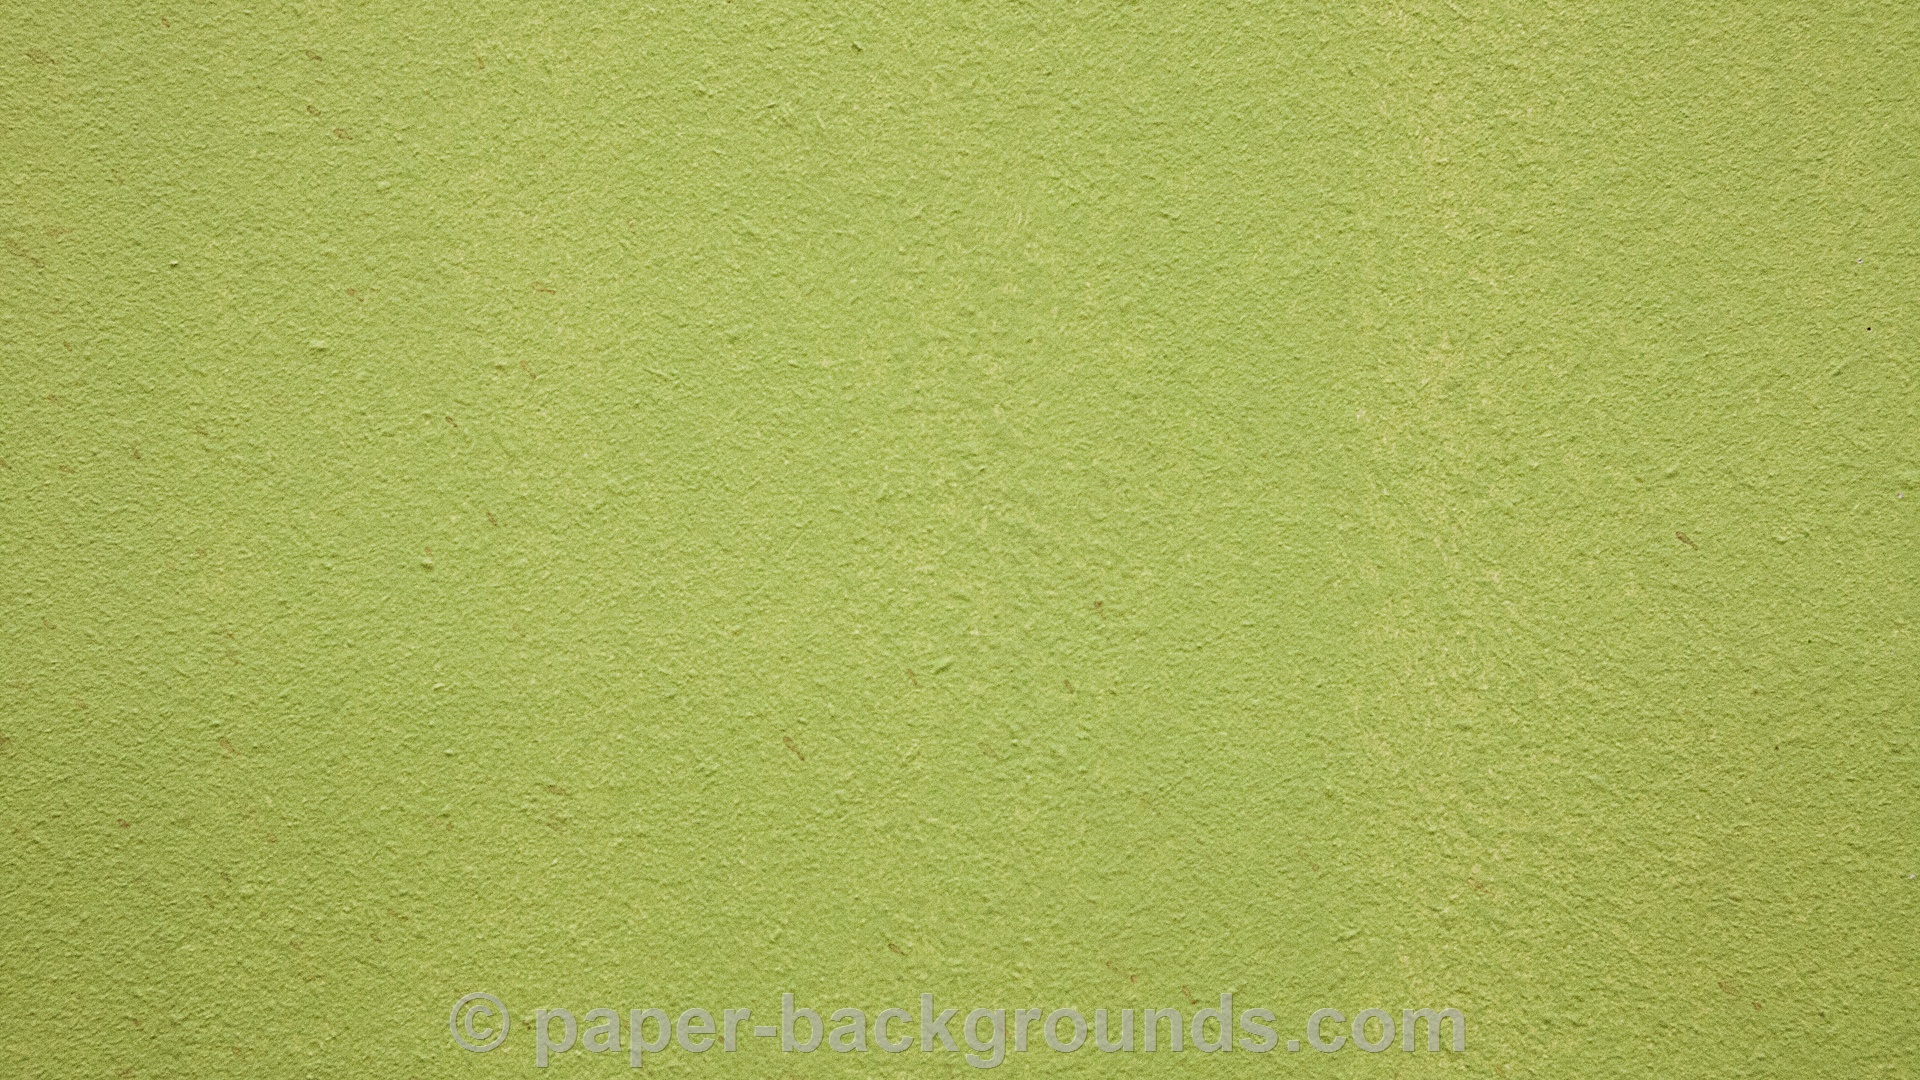 Paper Backgrounds | Green Painted Wall Texture Background HD